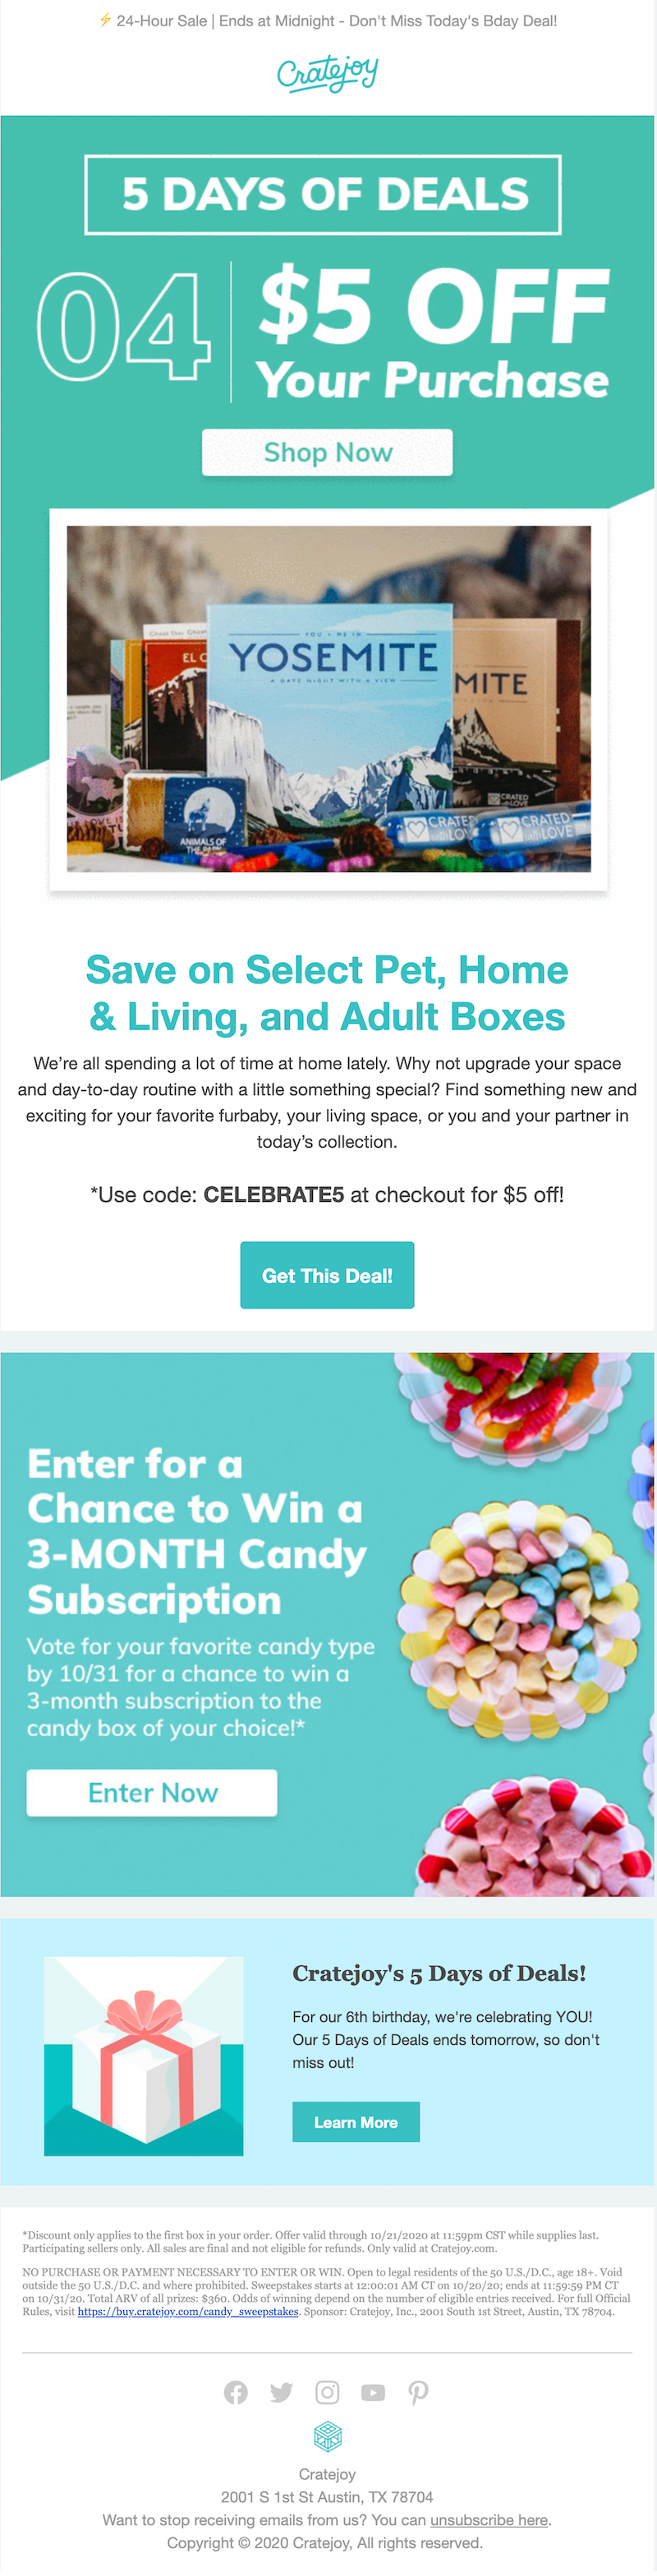 marketing email with color